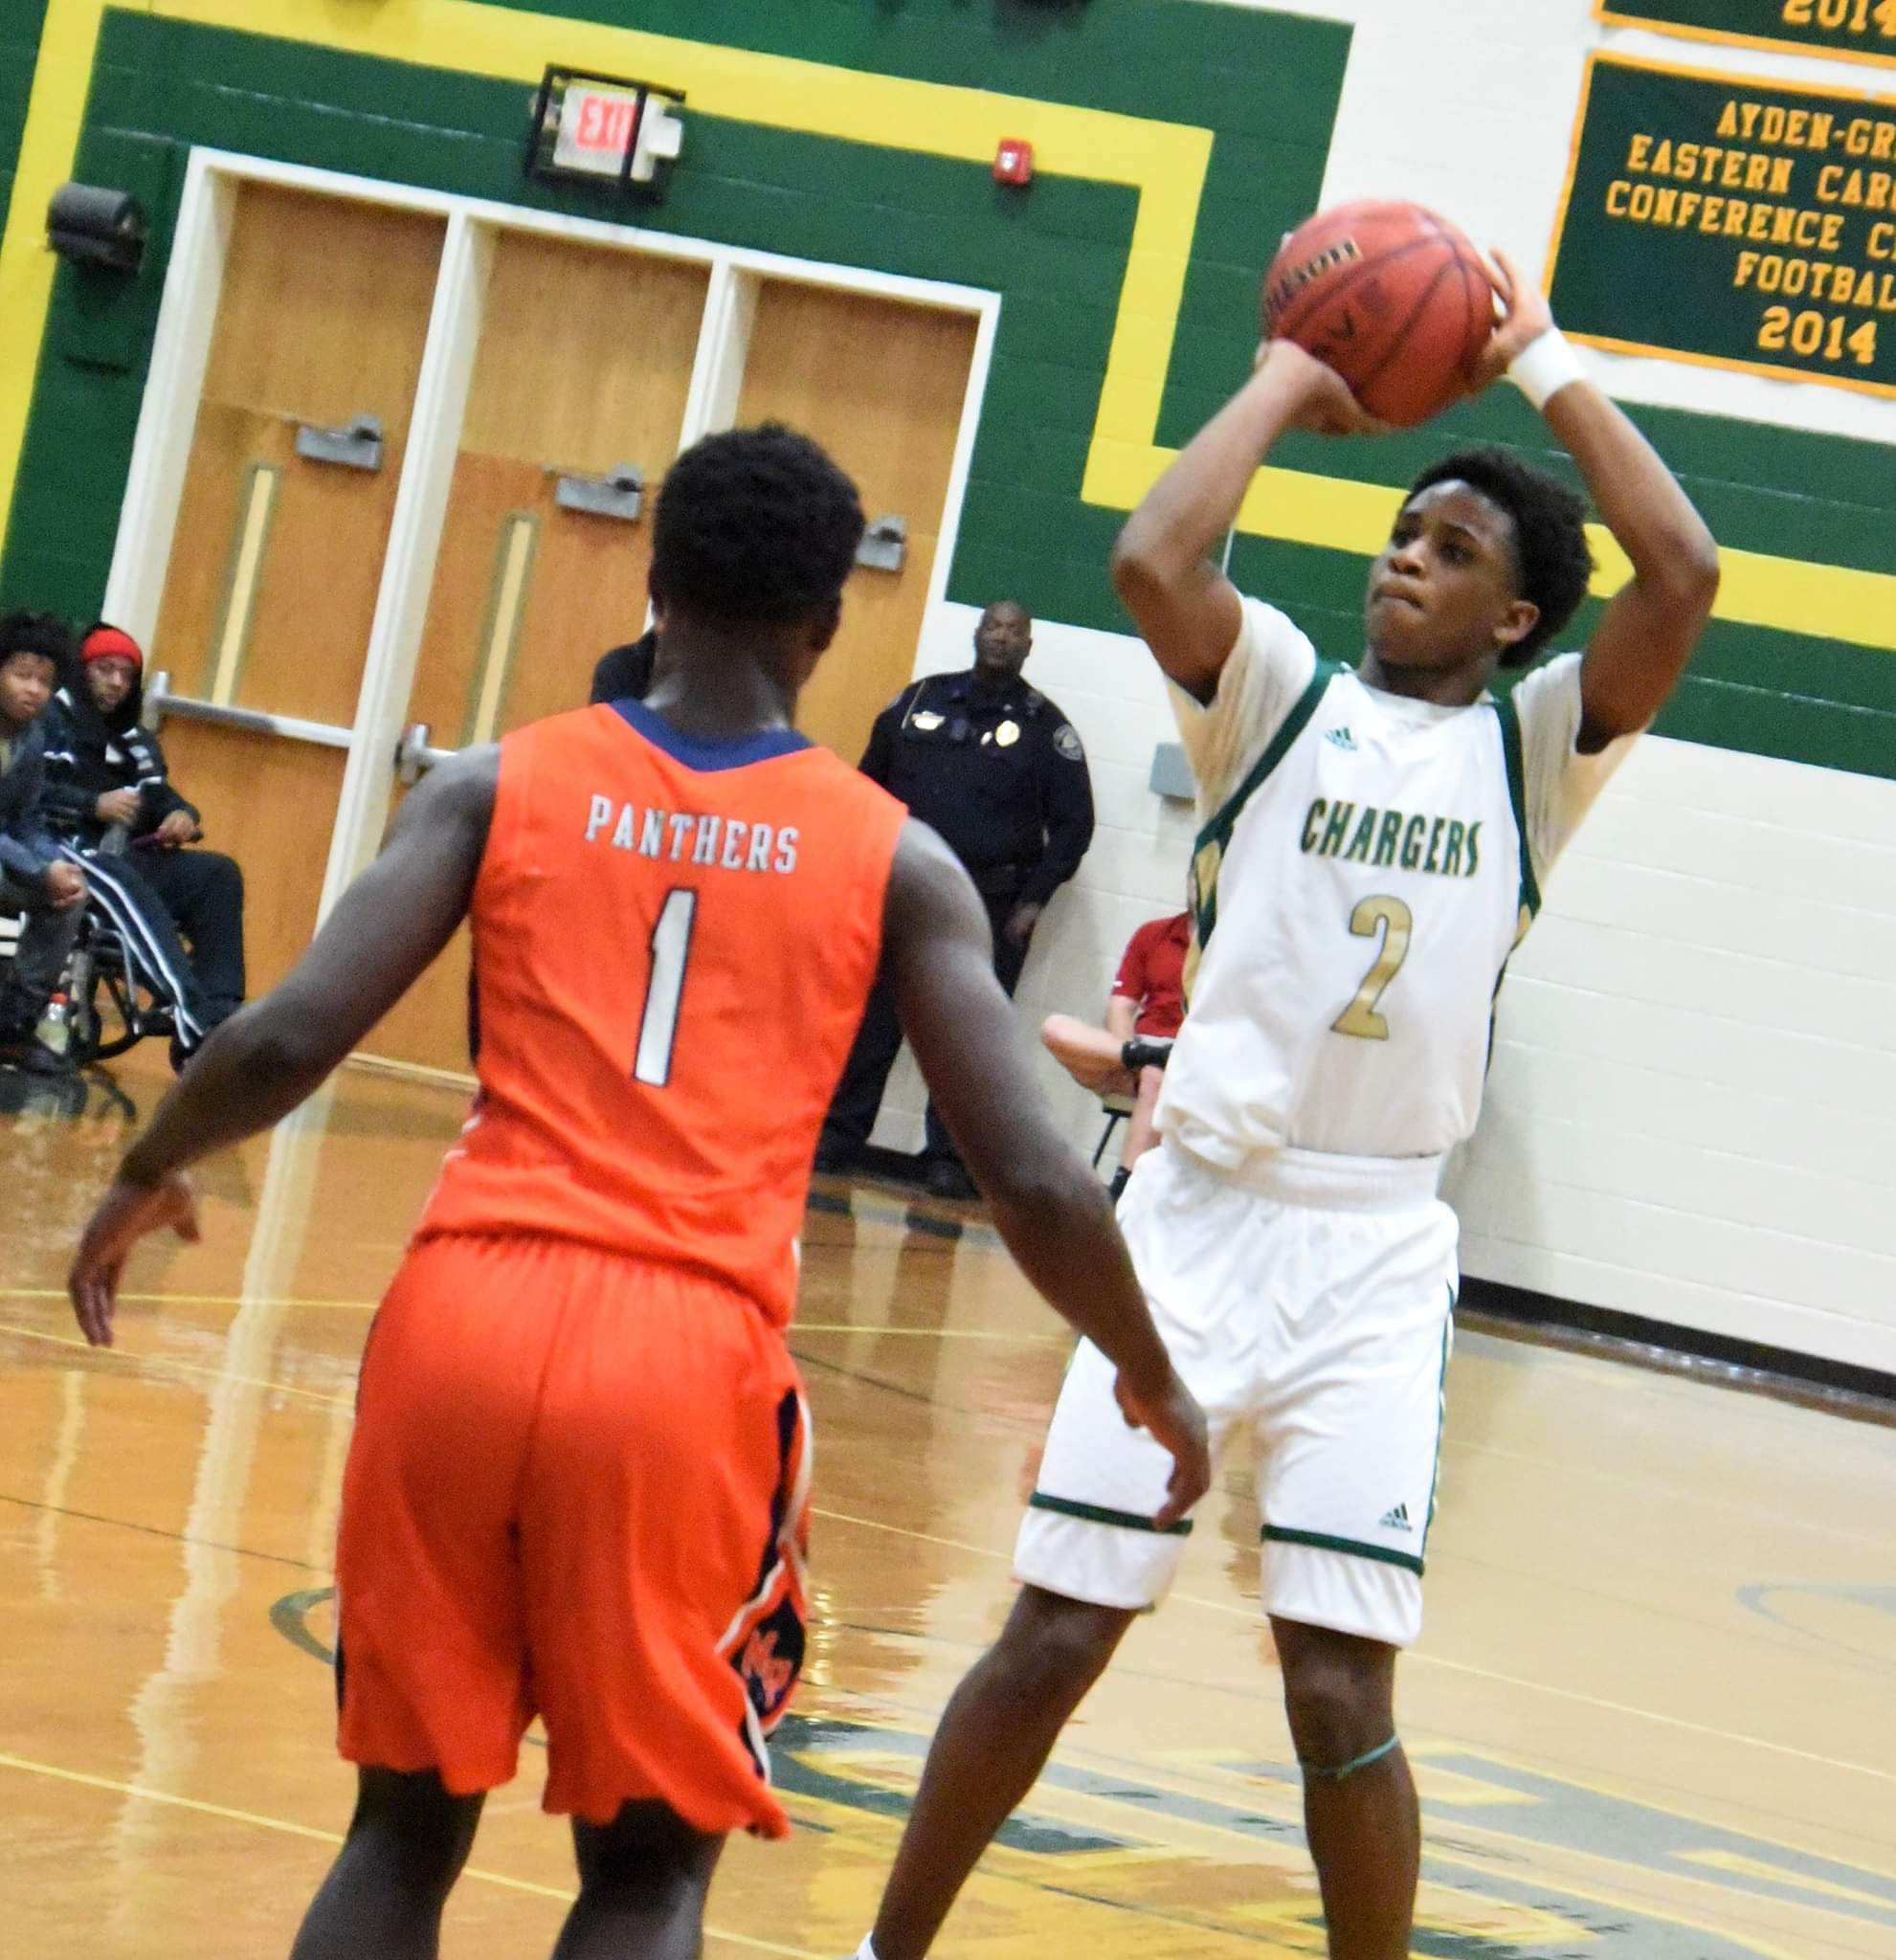 Ayden-Grifton's James Richardson takes a shot in a game against North Pitt on Dec. 18. The Chargers are the fifth boys team to qualify for the NCHSAA playoffs from the ECC and received a No. 26 seed. Photo by William 'Bud' Hardy / Neuse News